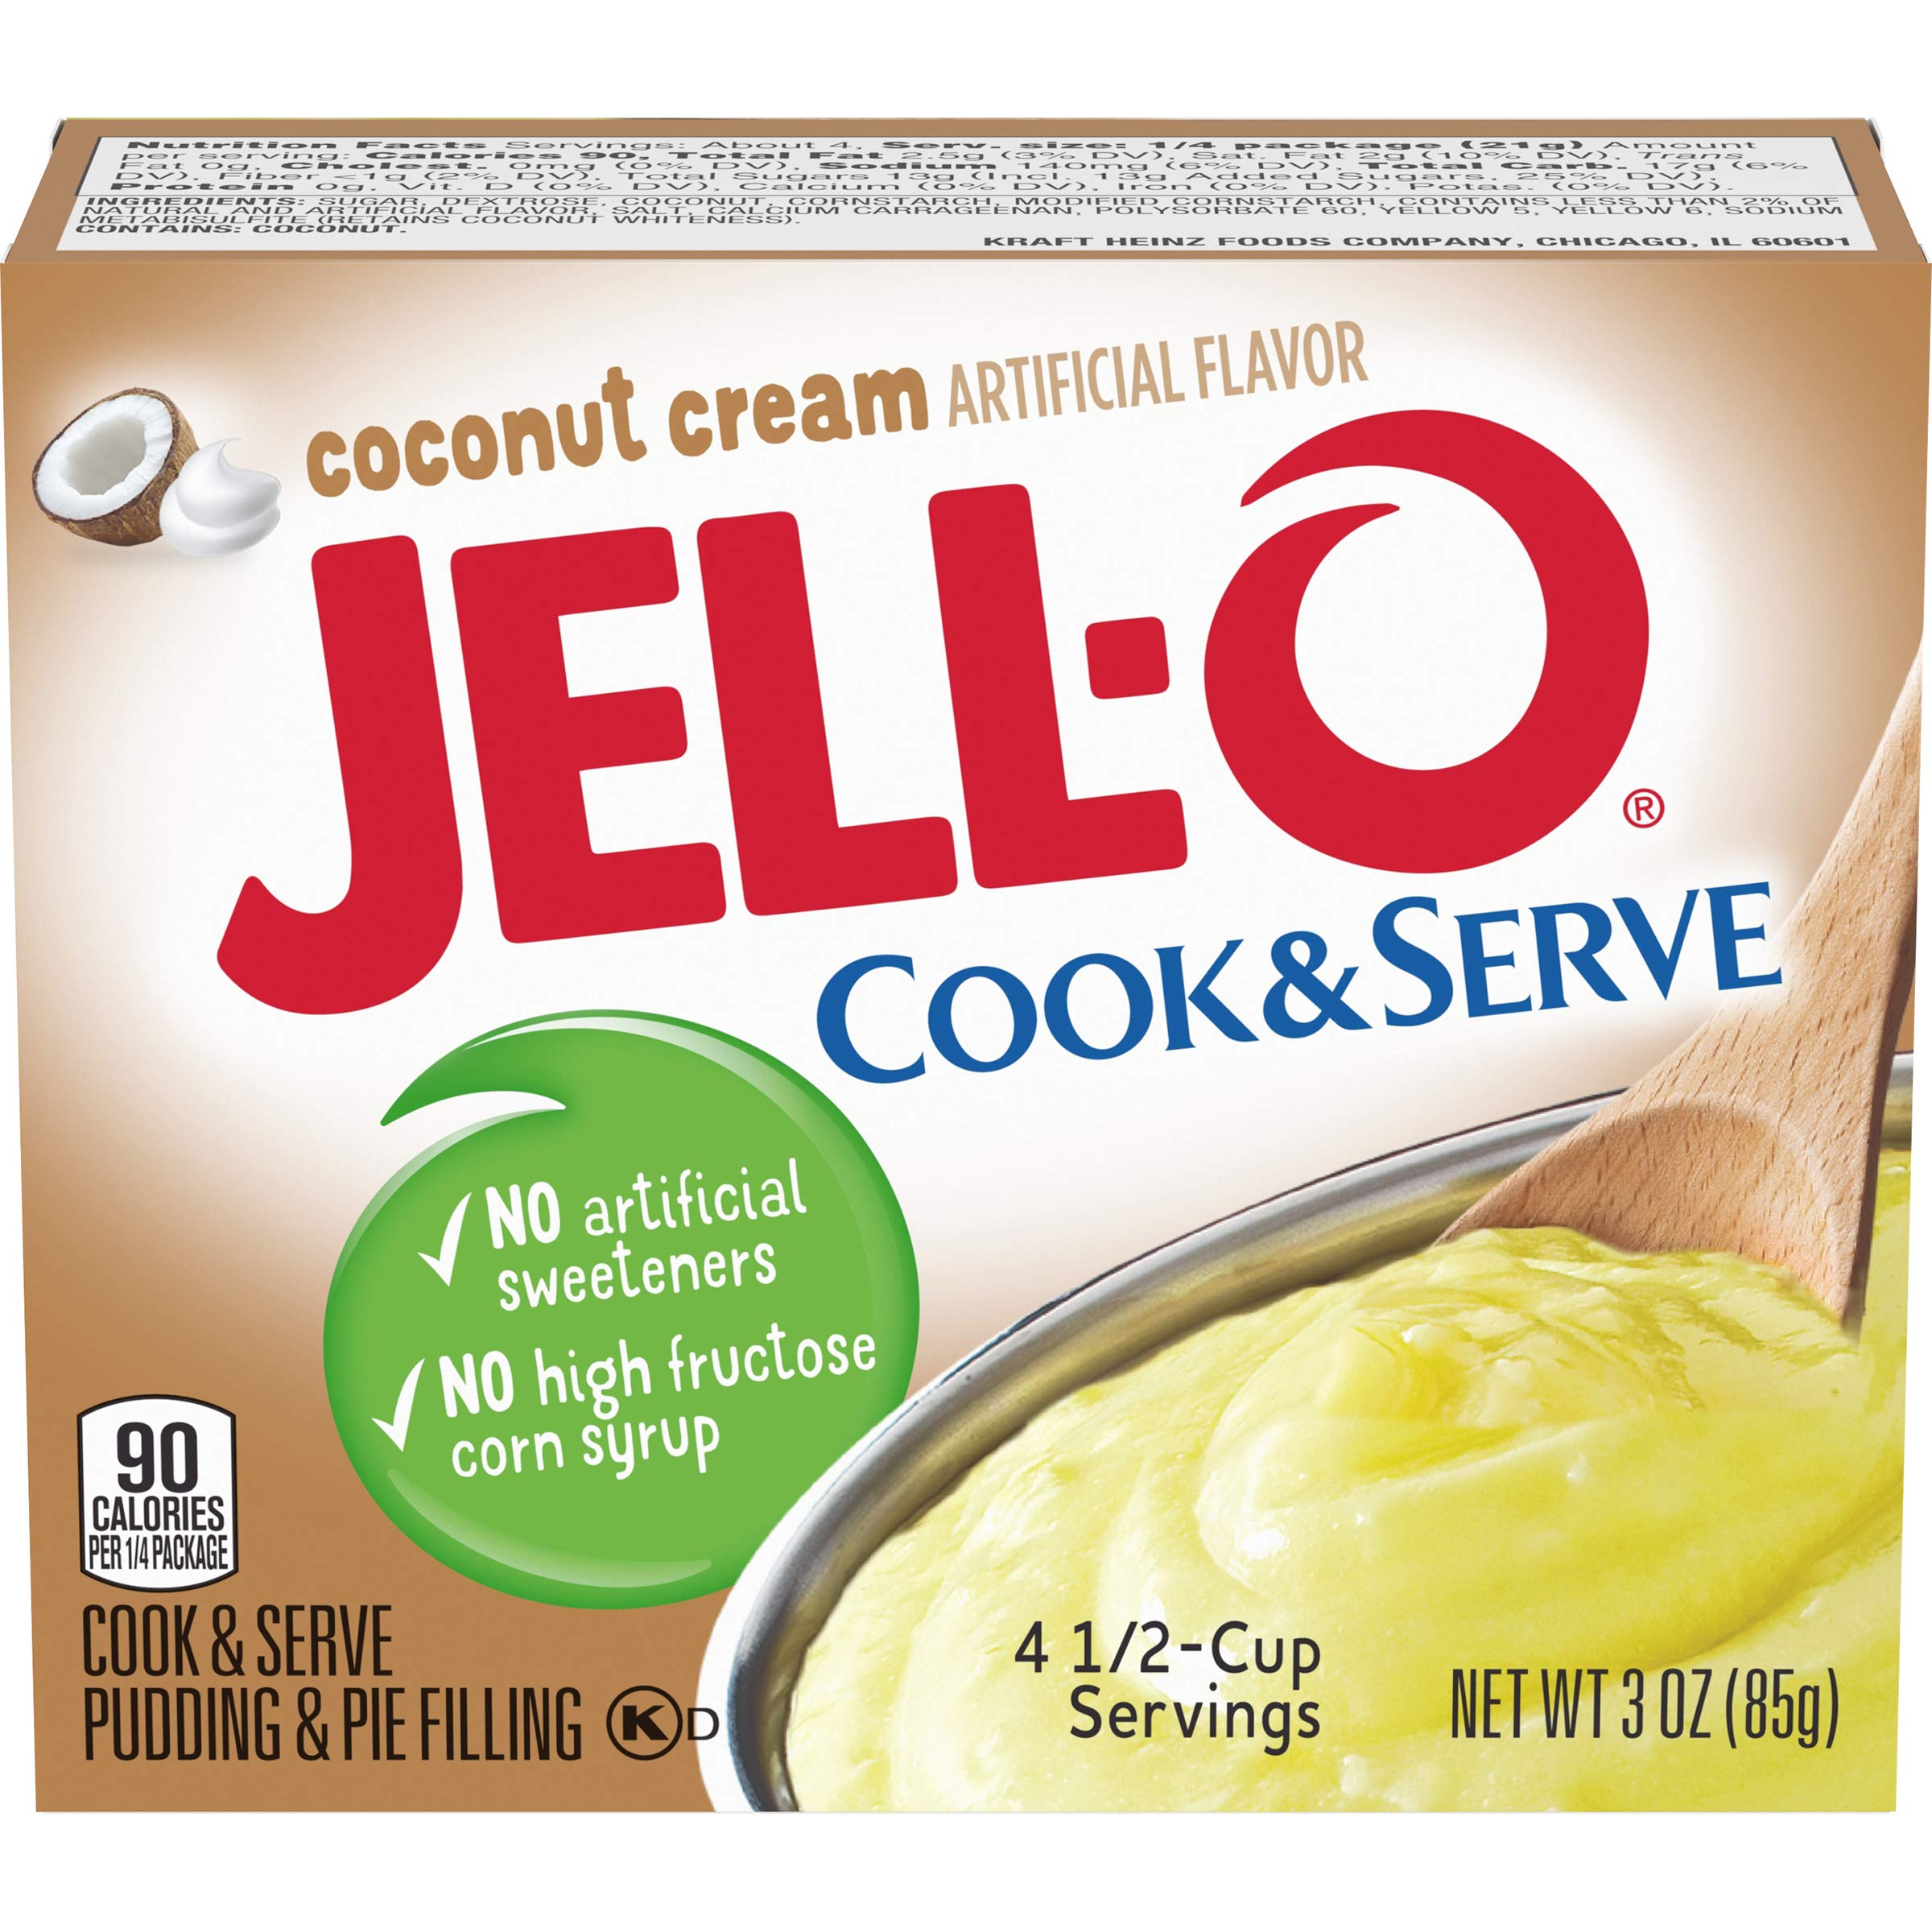 JELLO Instant Coconut Pudding Mix (3oz Boxes, Pack of 6)